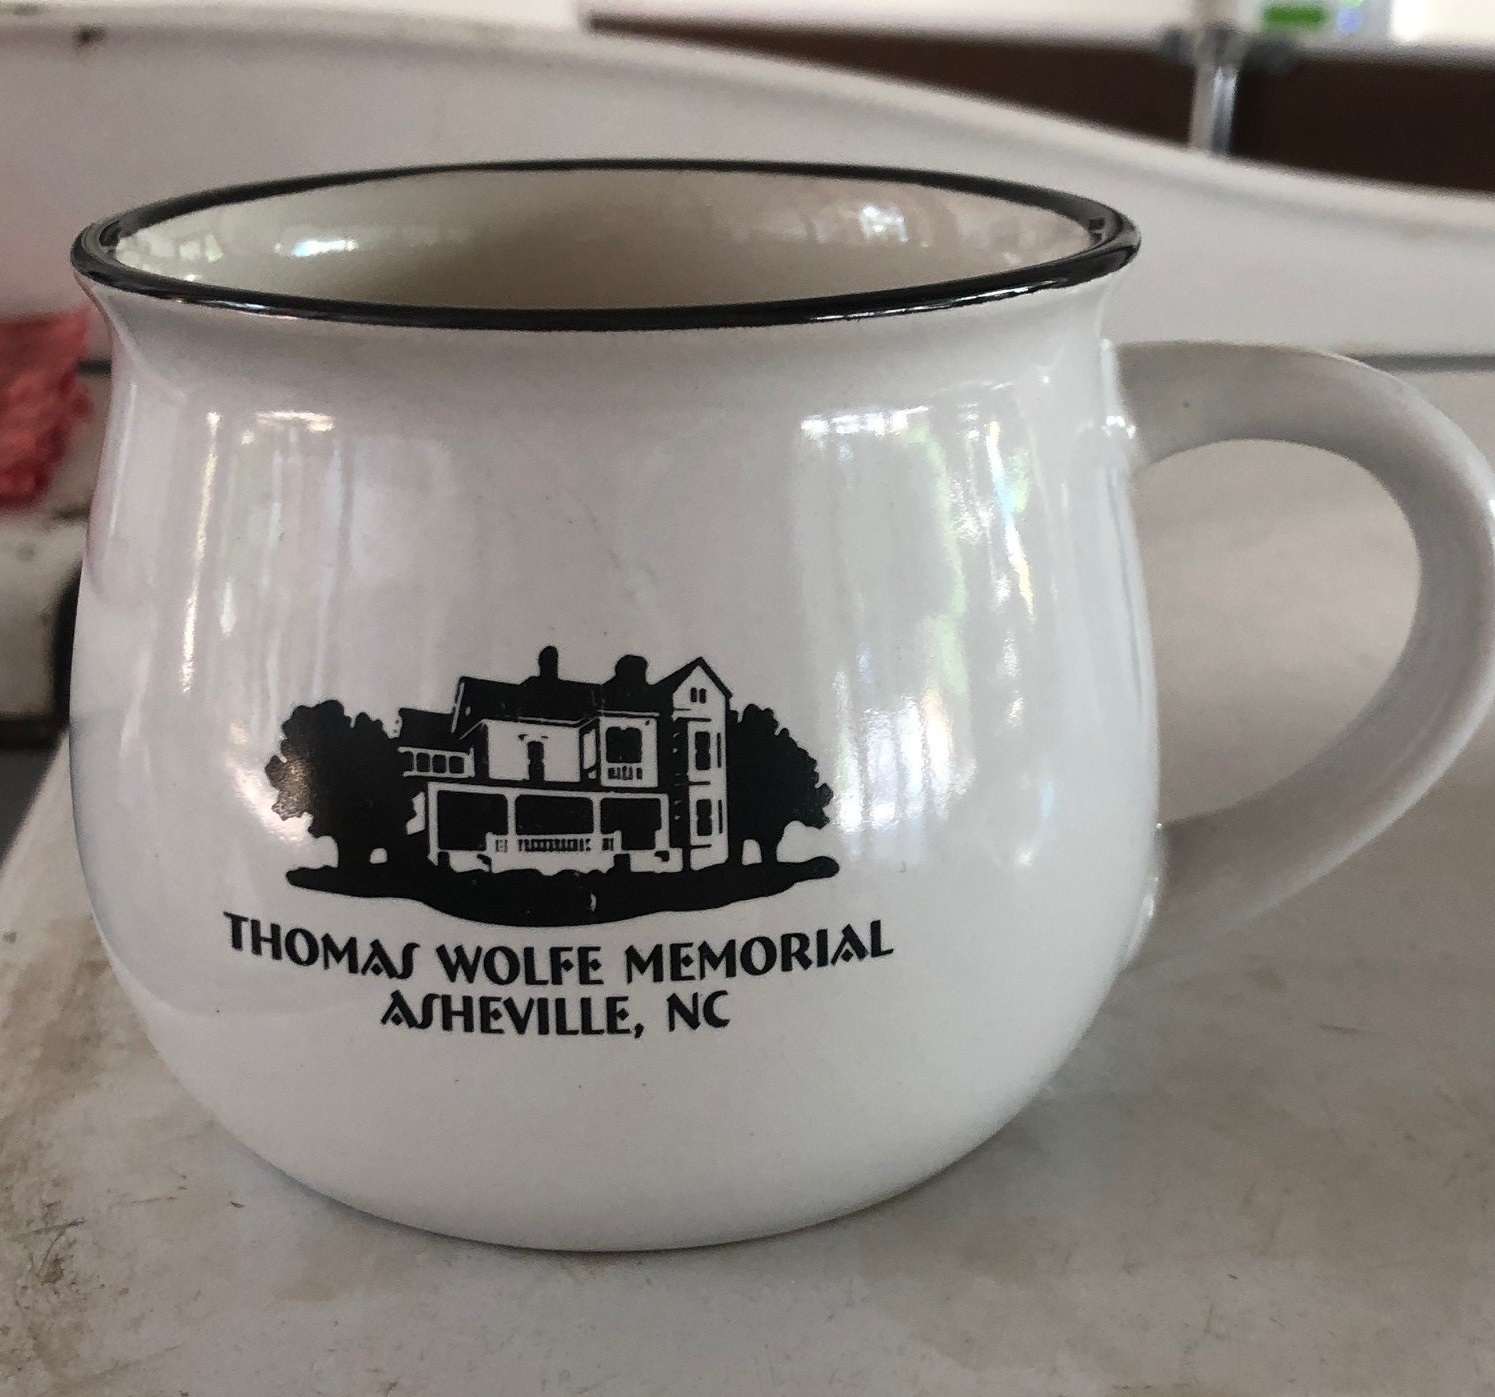 White coffee mug with image of the Old Kentucky Home in black and the words Thomas Wolfe Memorial Asheville NC